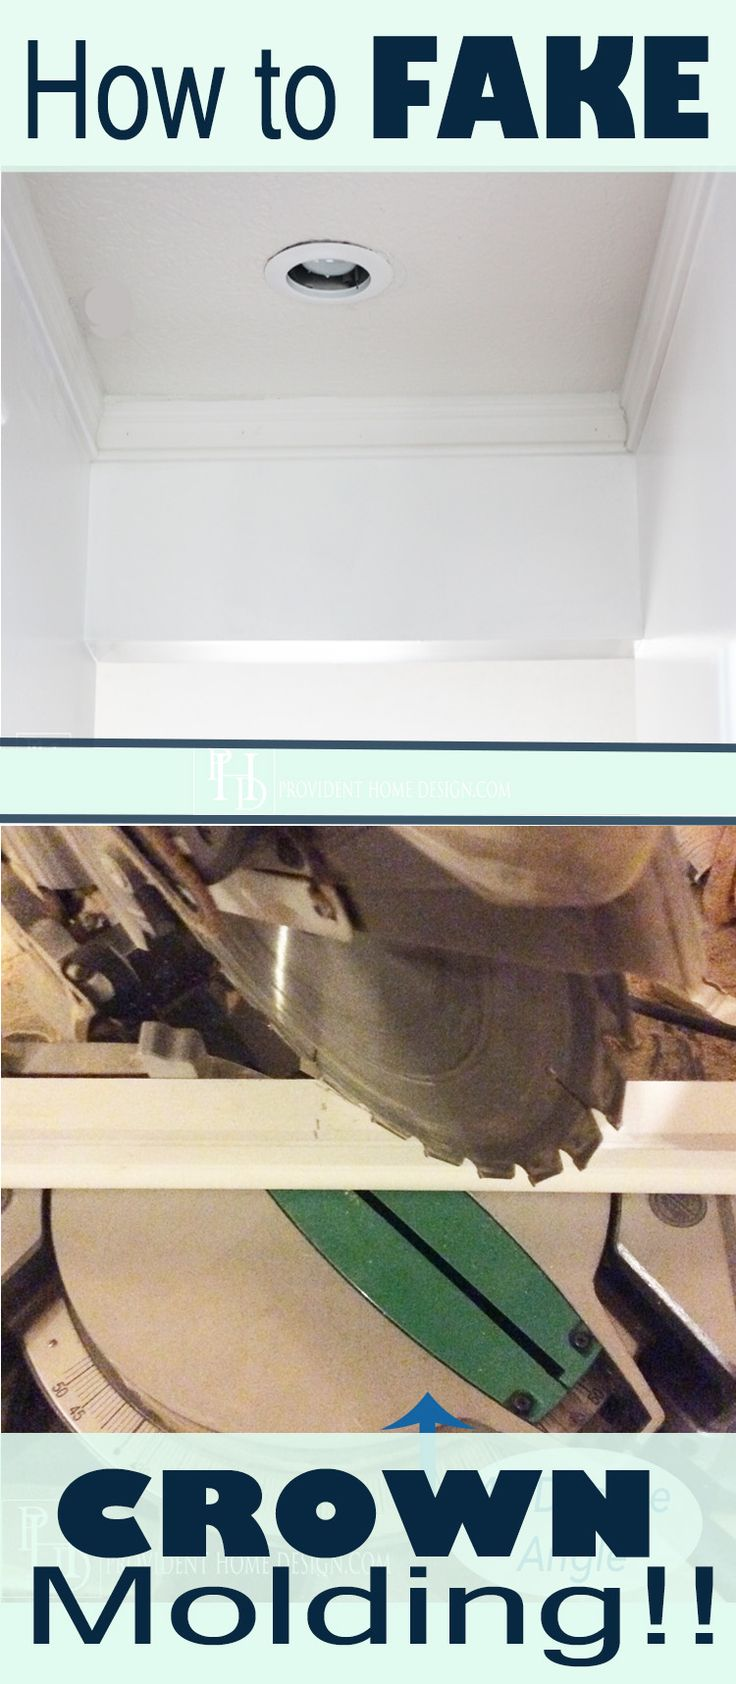 Molding amp trim find baseboard and crown molding designs online - Crown Molding Can Upscale A Space But Can Be Tricky To Learn And Expensive To Hire